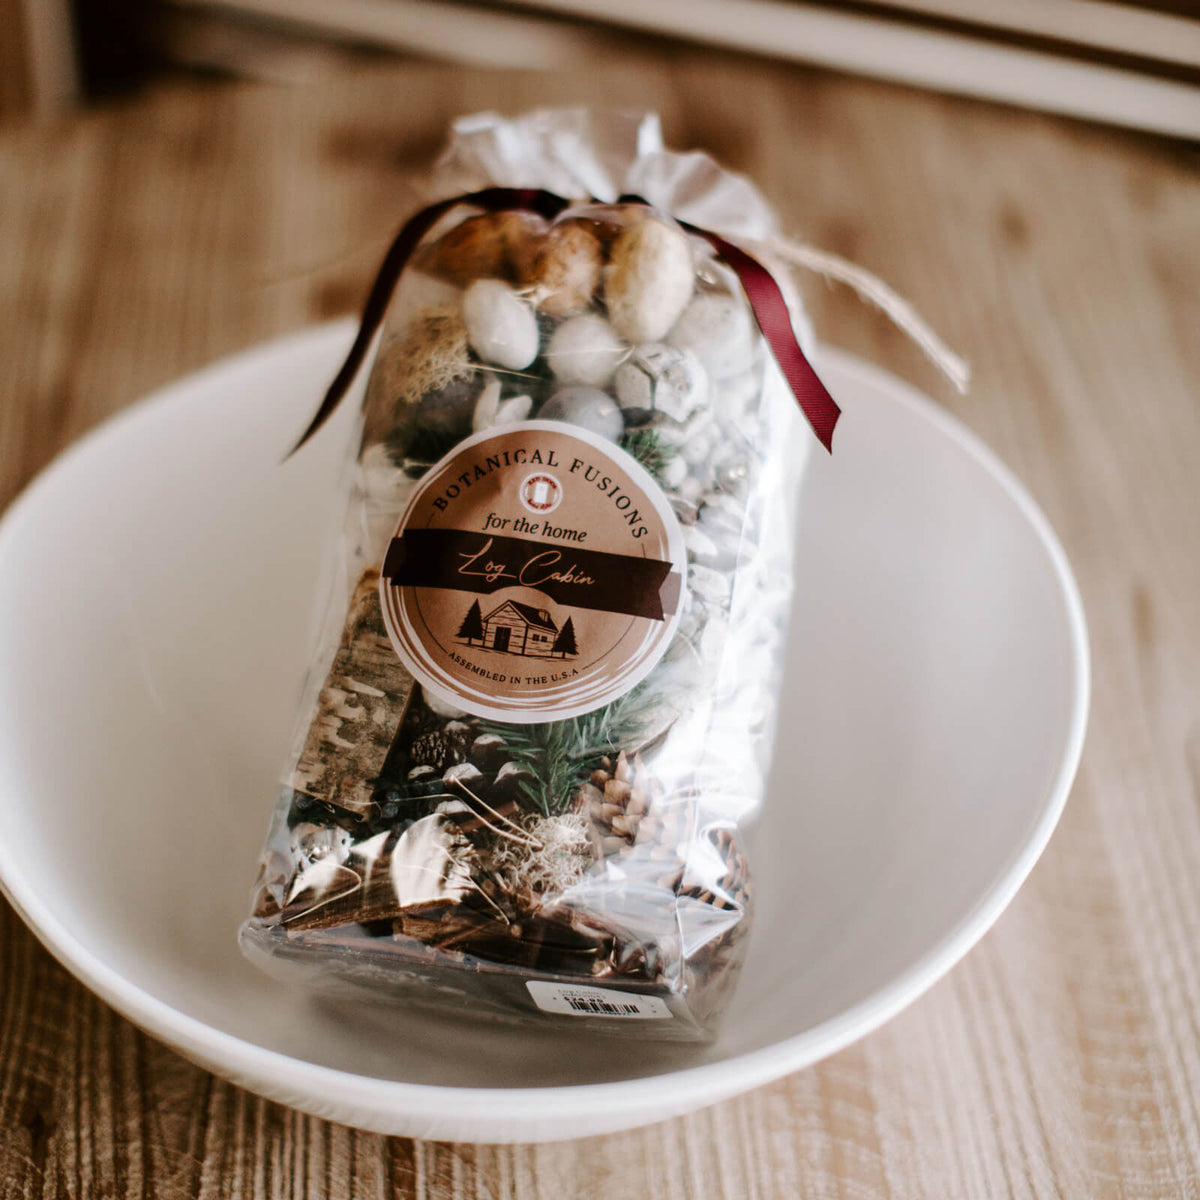 Bag of potpourri in Log Cabin scent resting in a bowl on a table